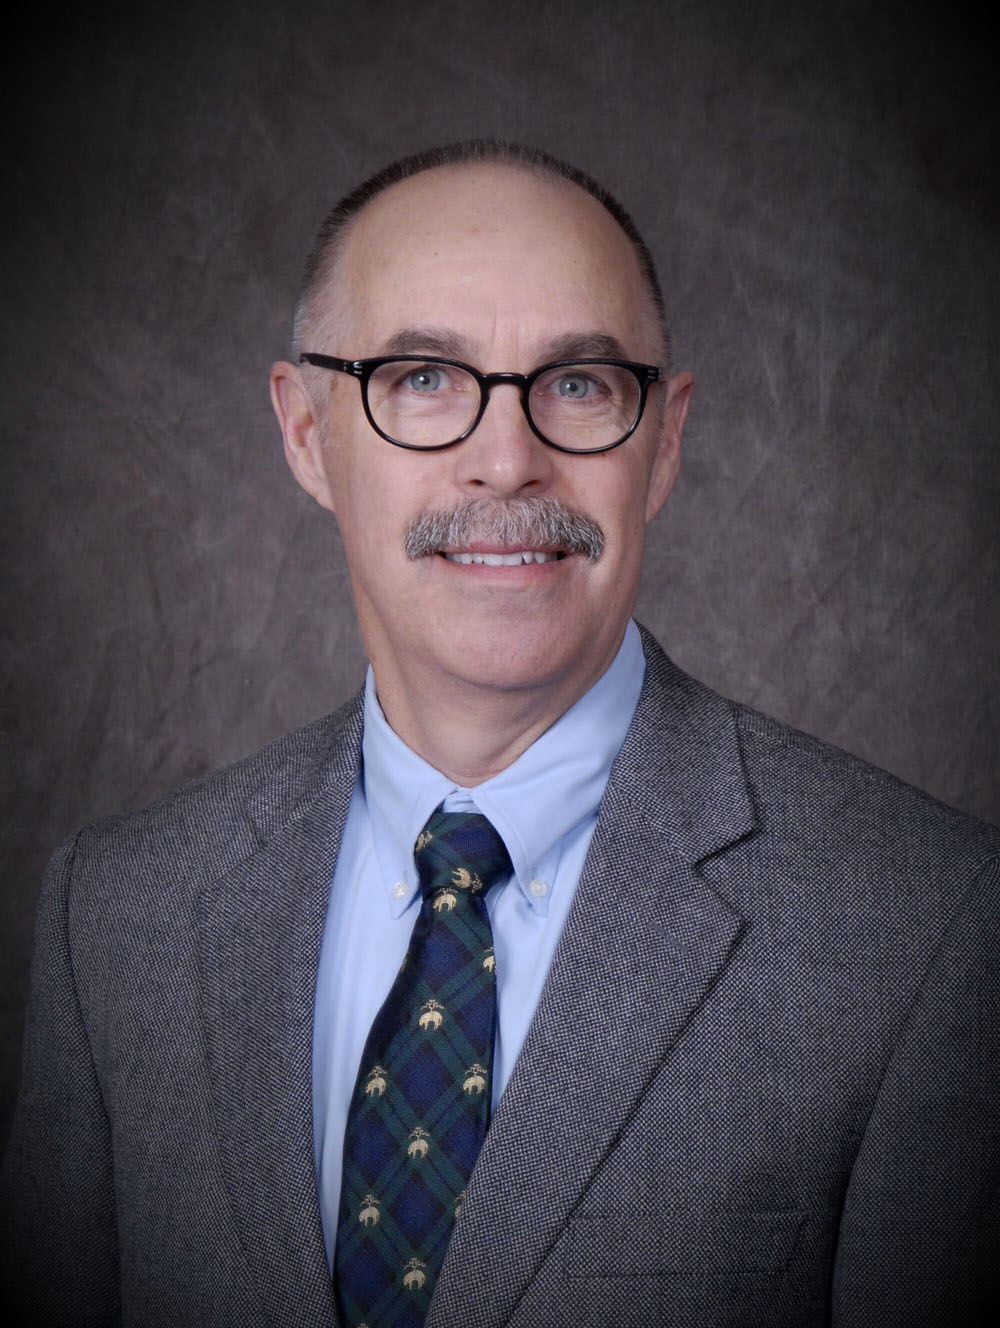 Dr. Peter Buckley, MD